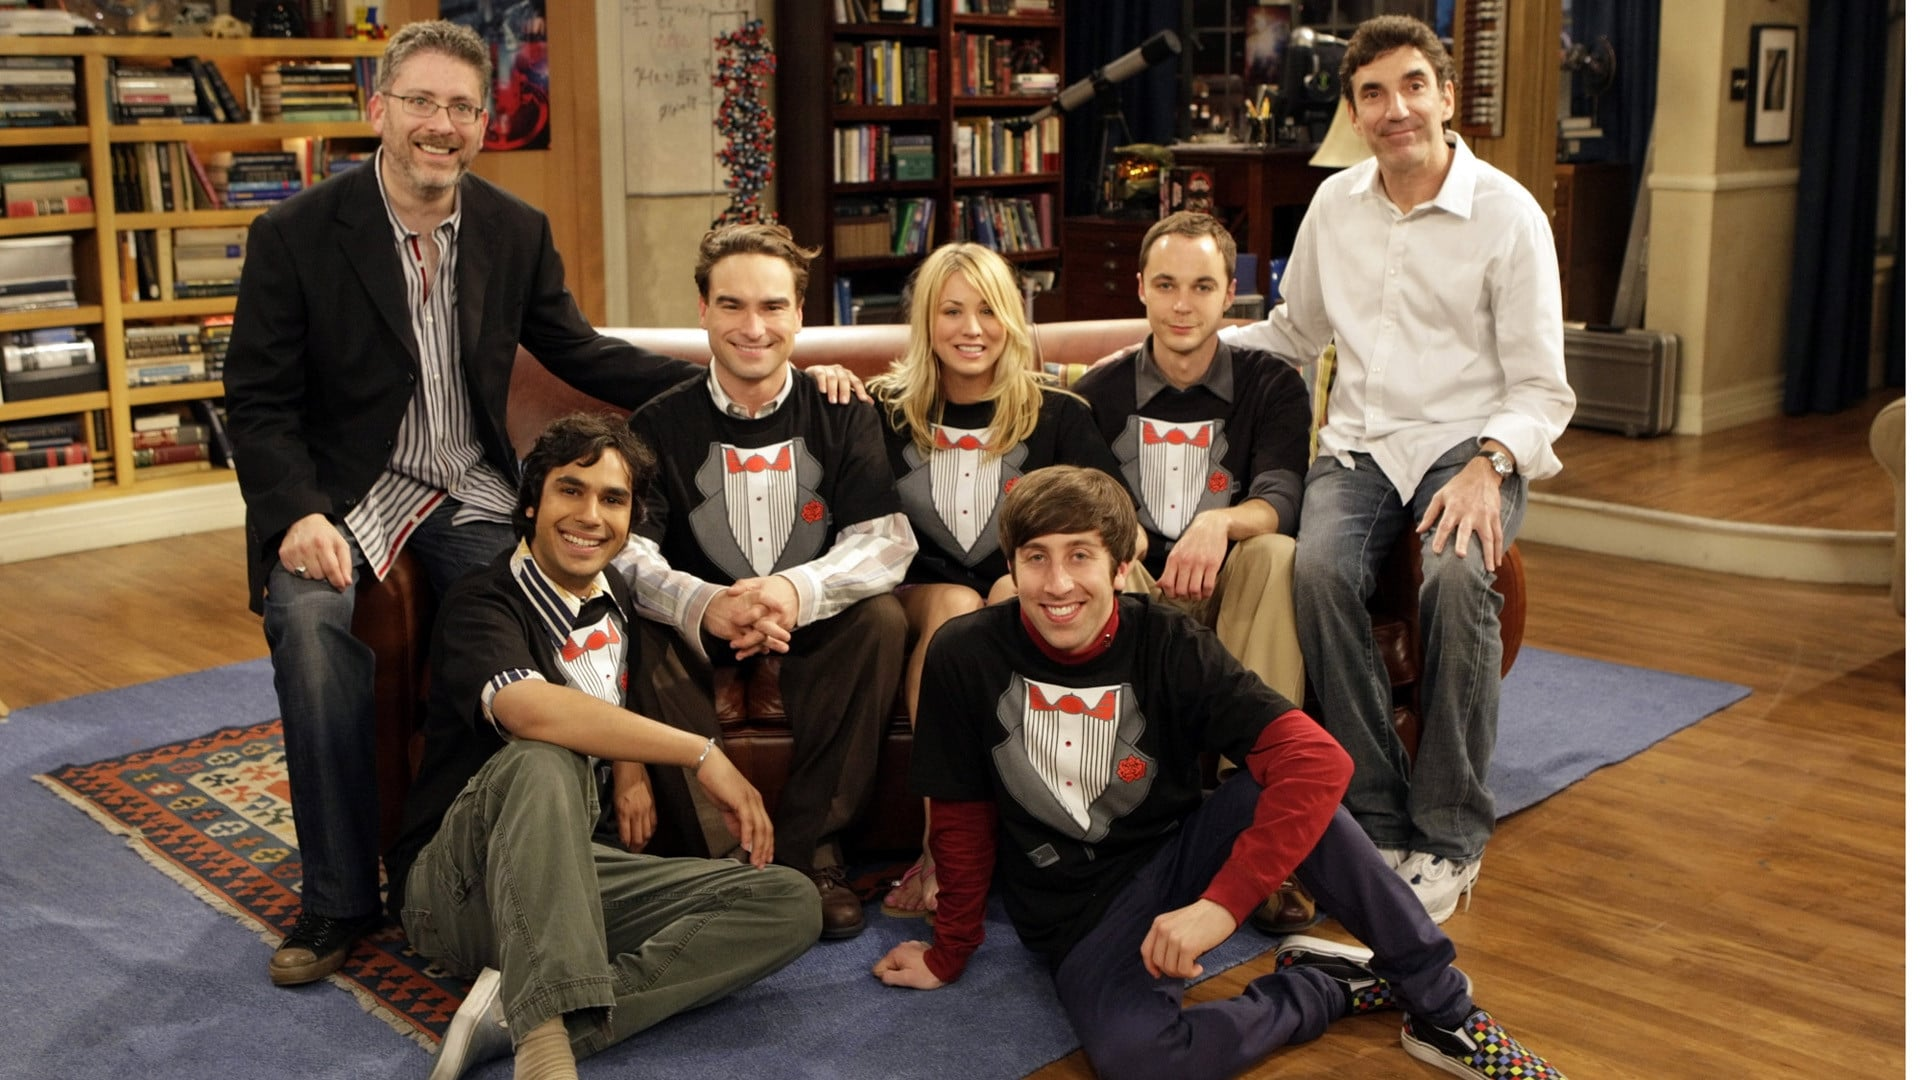 The Big Bang Theory - Season 7